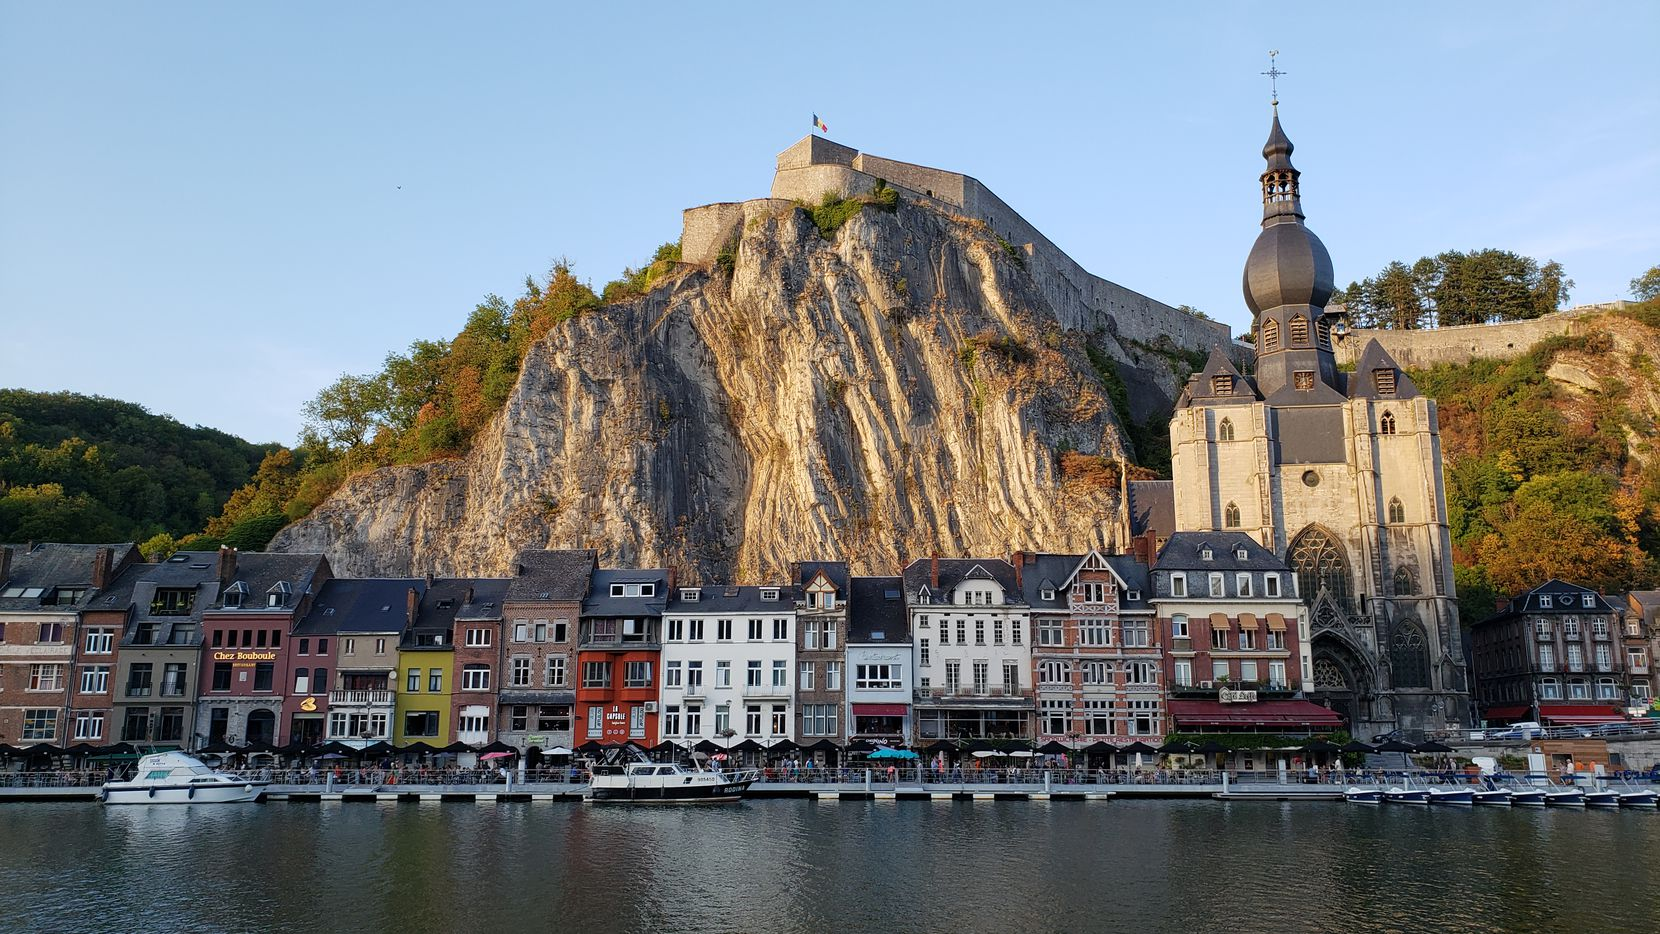 Dinant has a picturesque setting on the Meuse River, in the shadow of its 200-year-old mountaintop citadel.